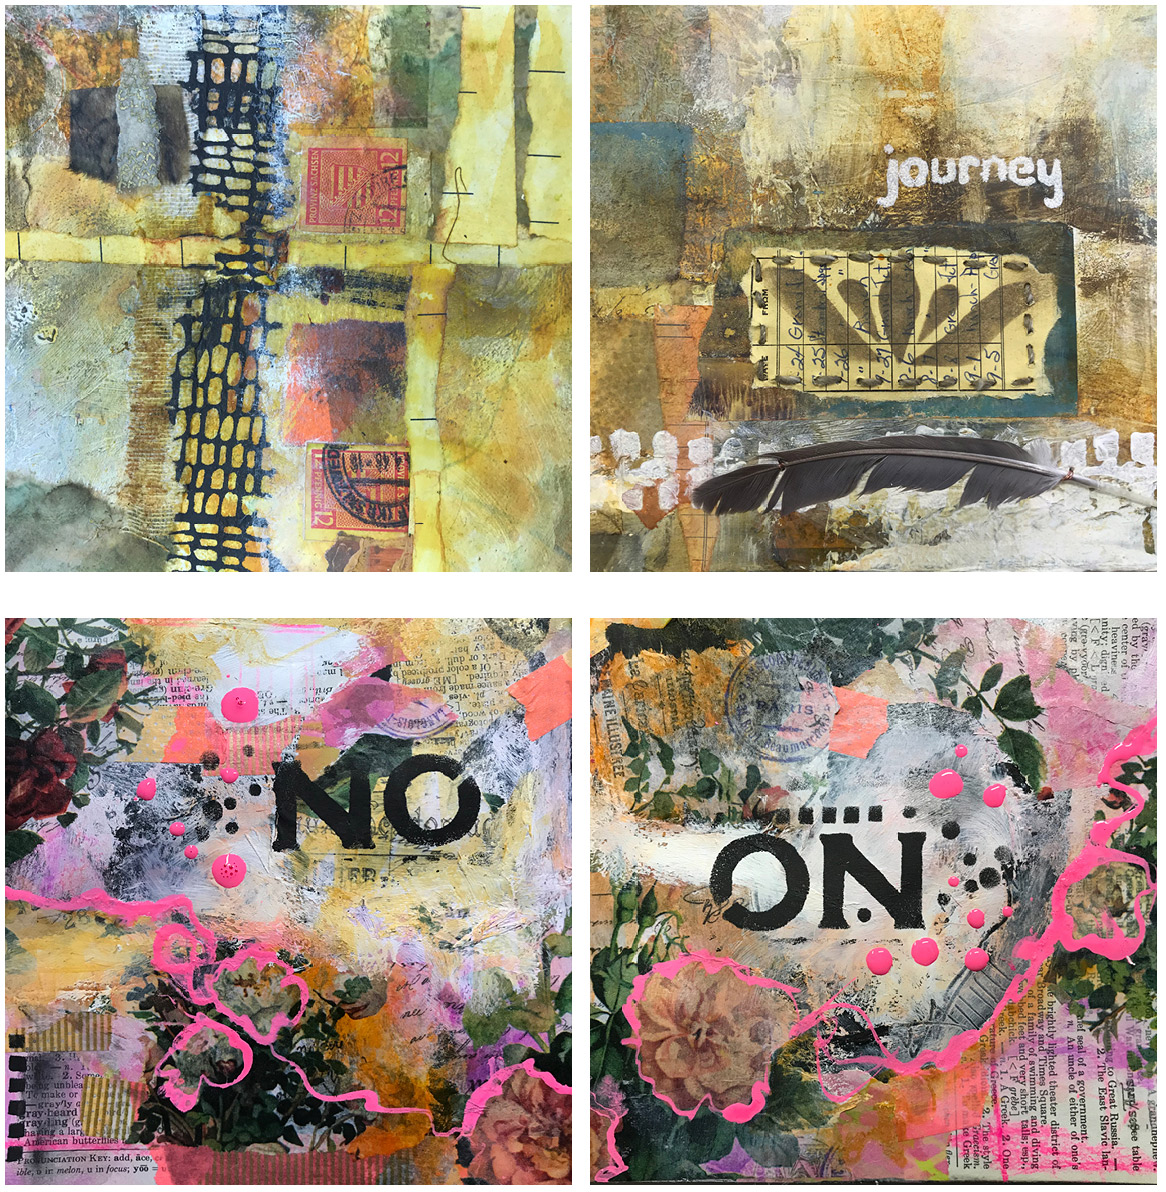 mary-beth-shaw-art-journal-collage-4.jpg